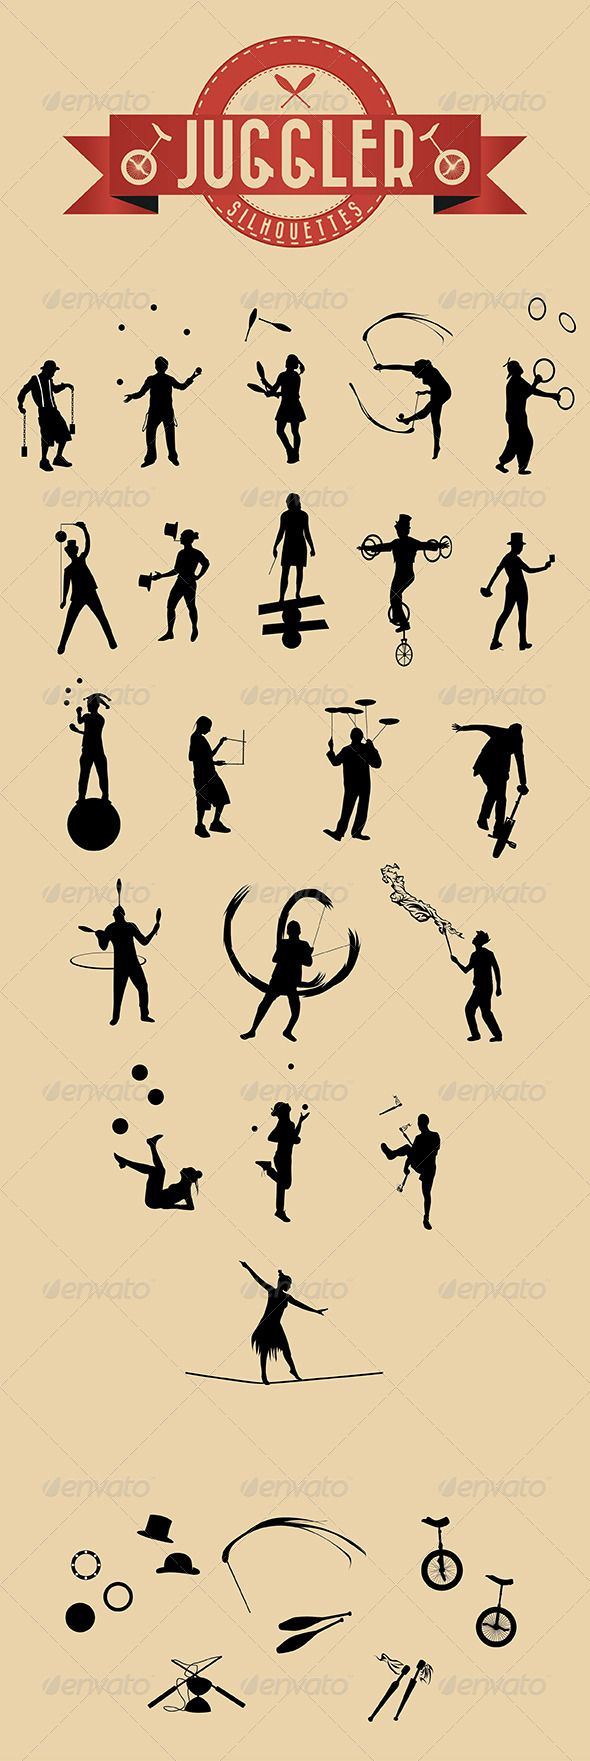 21 Jugglers Vector Silhouettes GraphicRiver 21 Jugglers